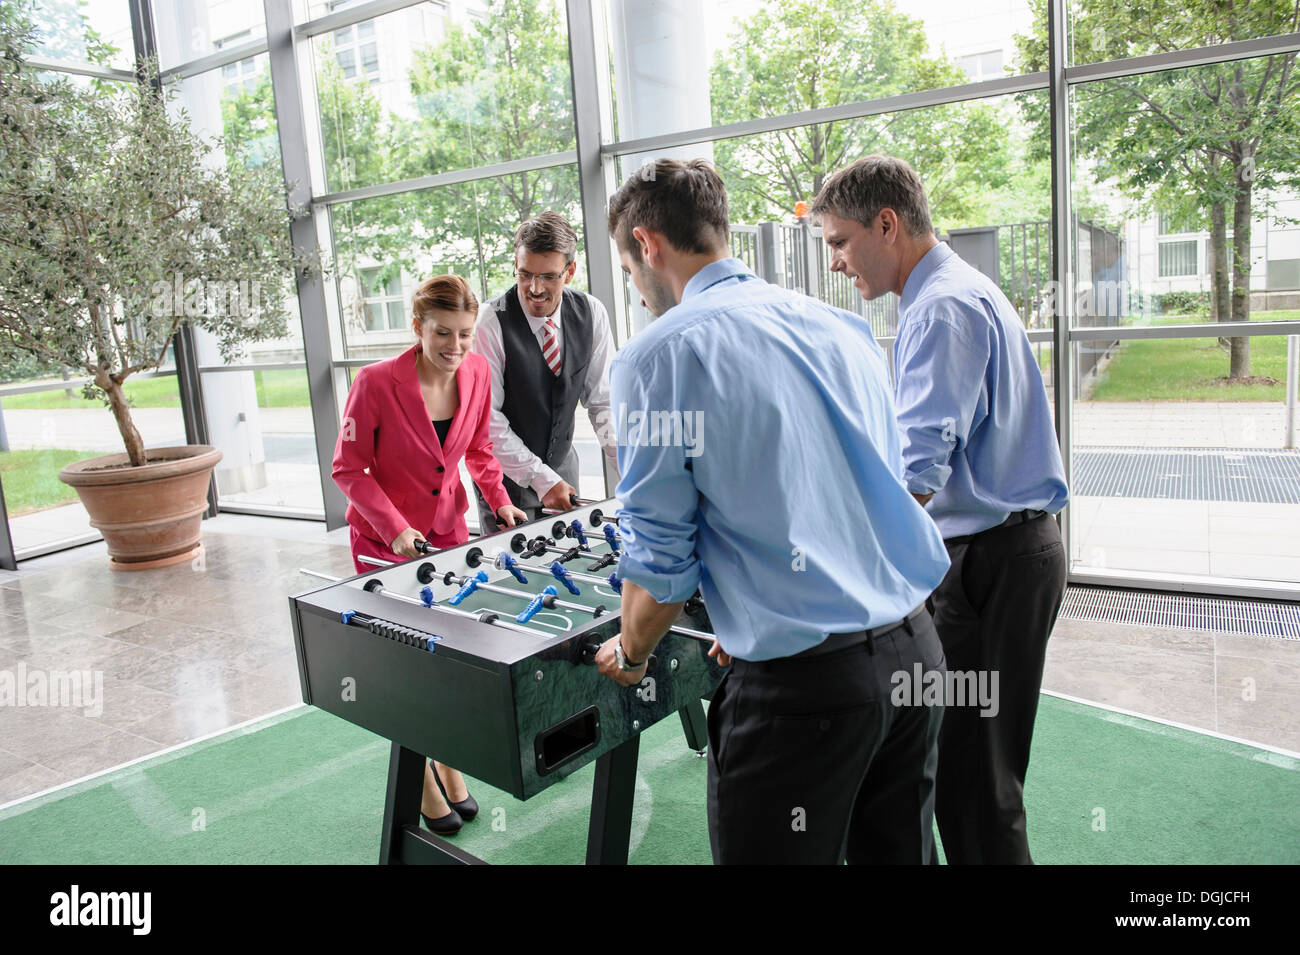 Businesspeople playing table football in lobby - Stock Image